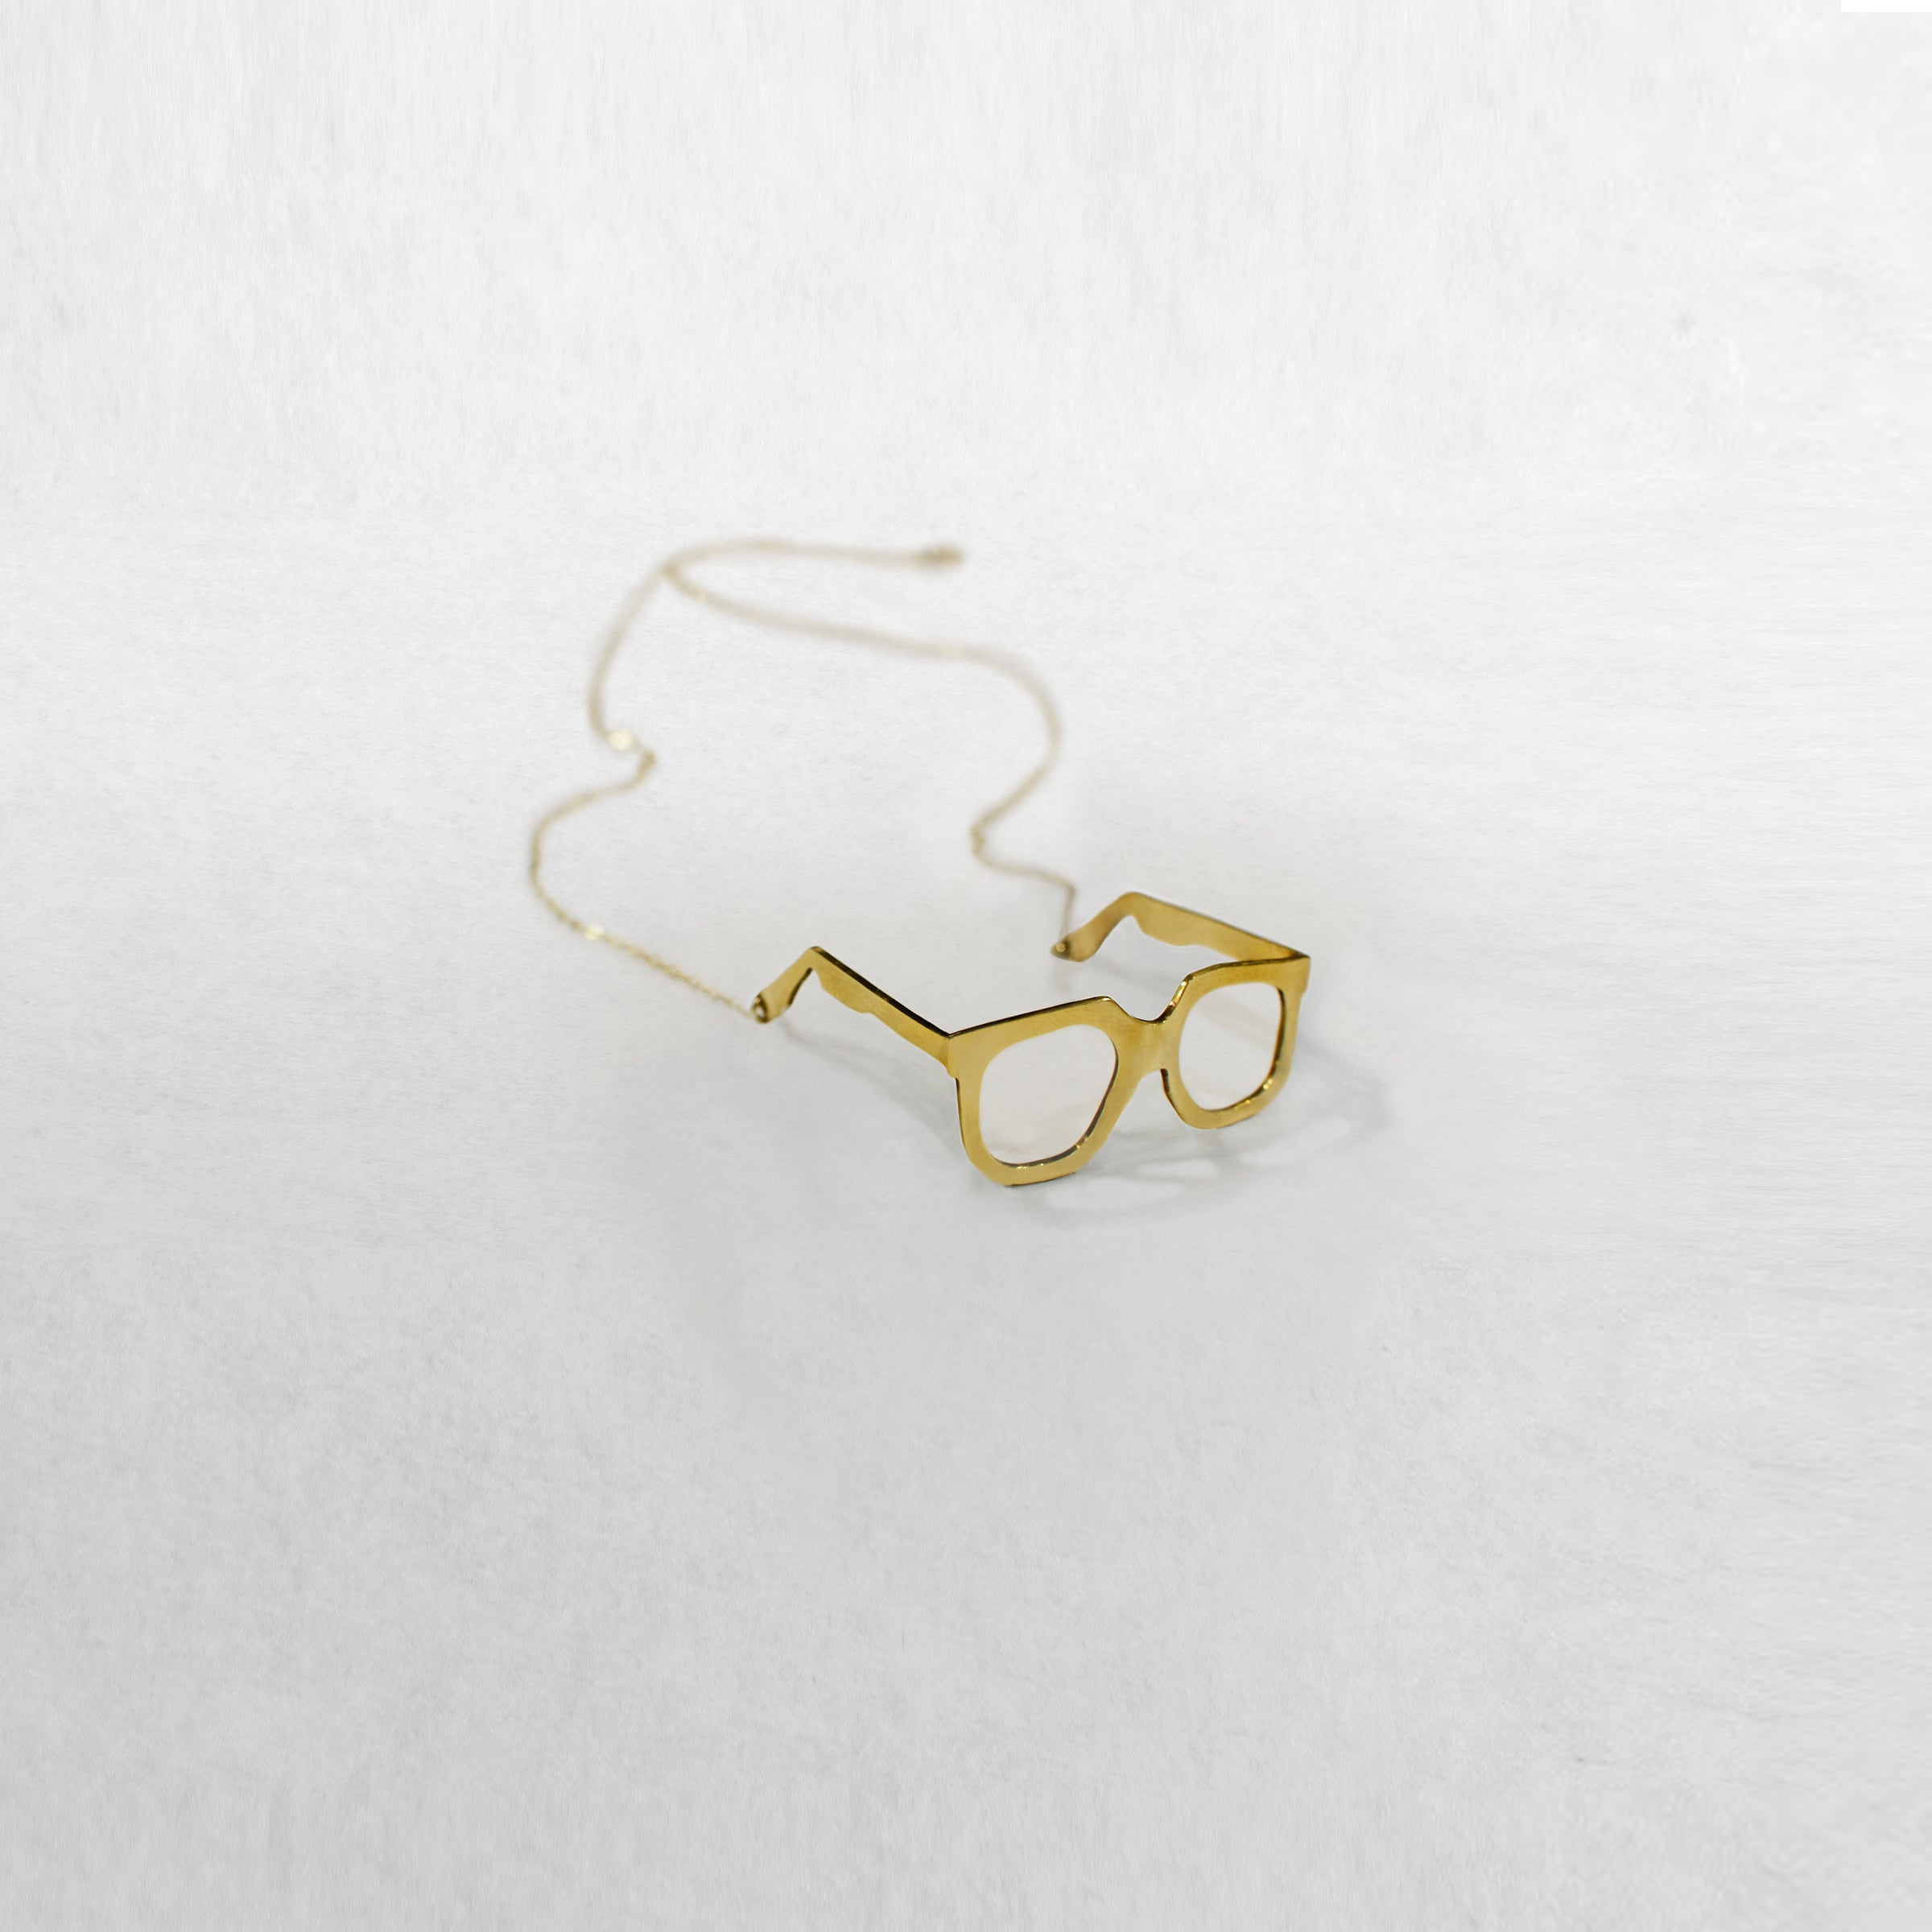 →EYEGLASSES HOLDER NECKLACE← NECKLACE